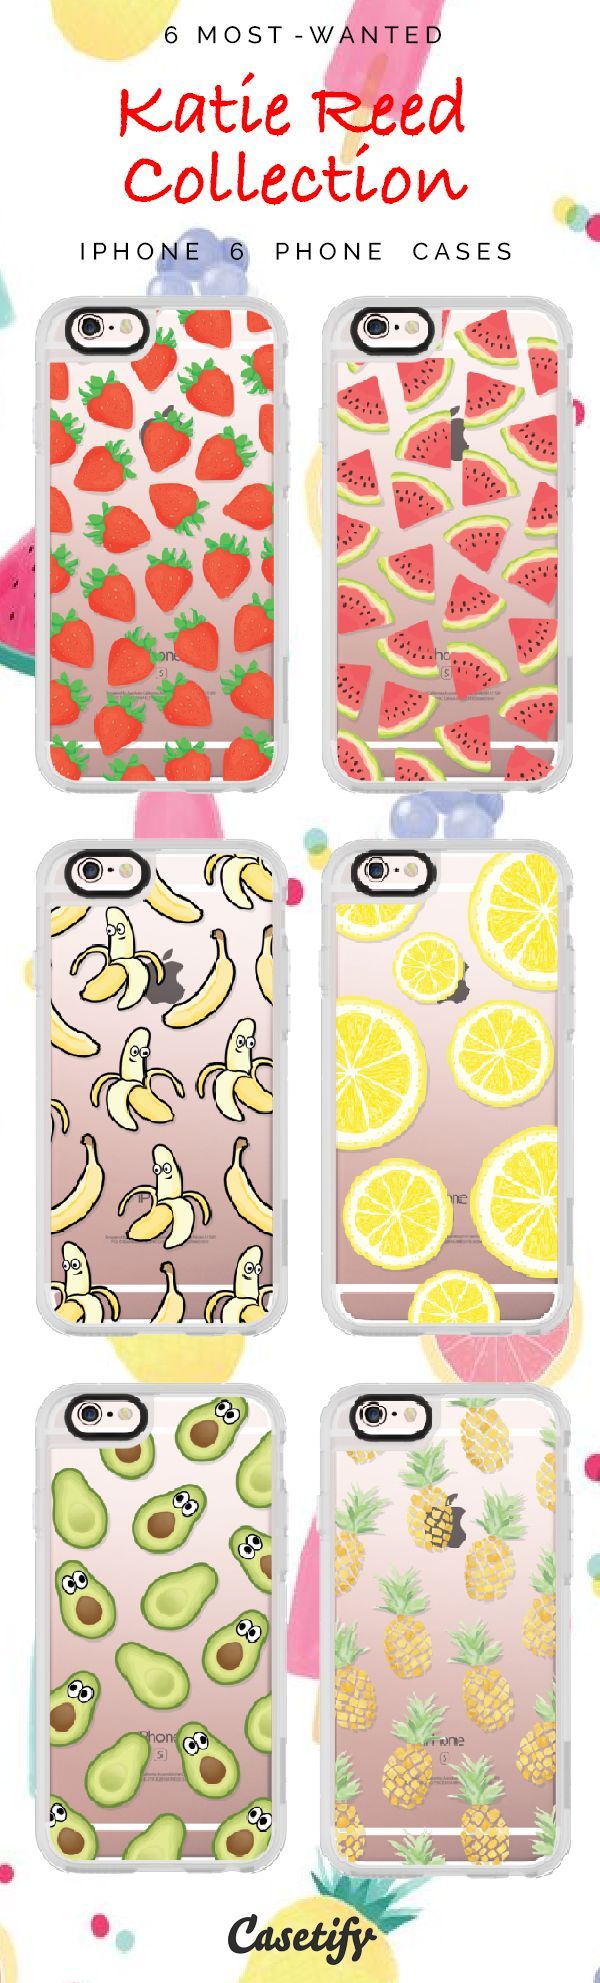 Top 6 Katie Reed Collection Iphone 6 Protective Phone Case Designs